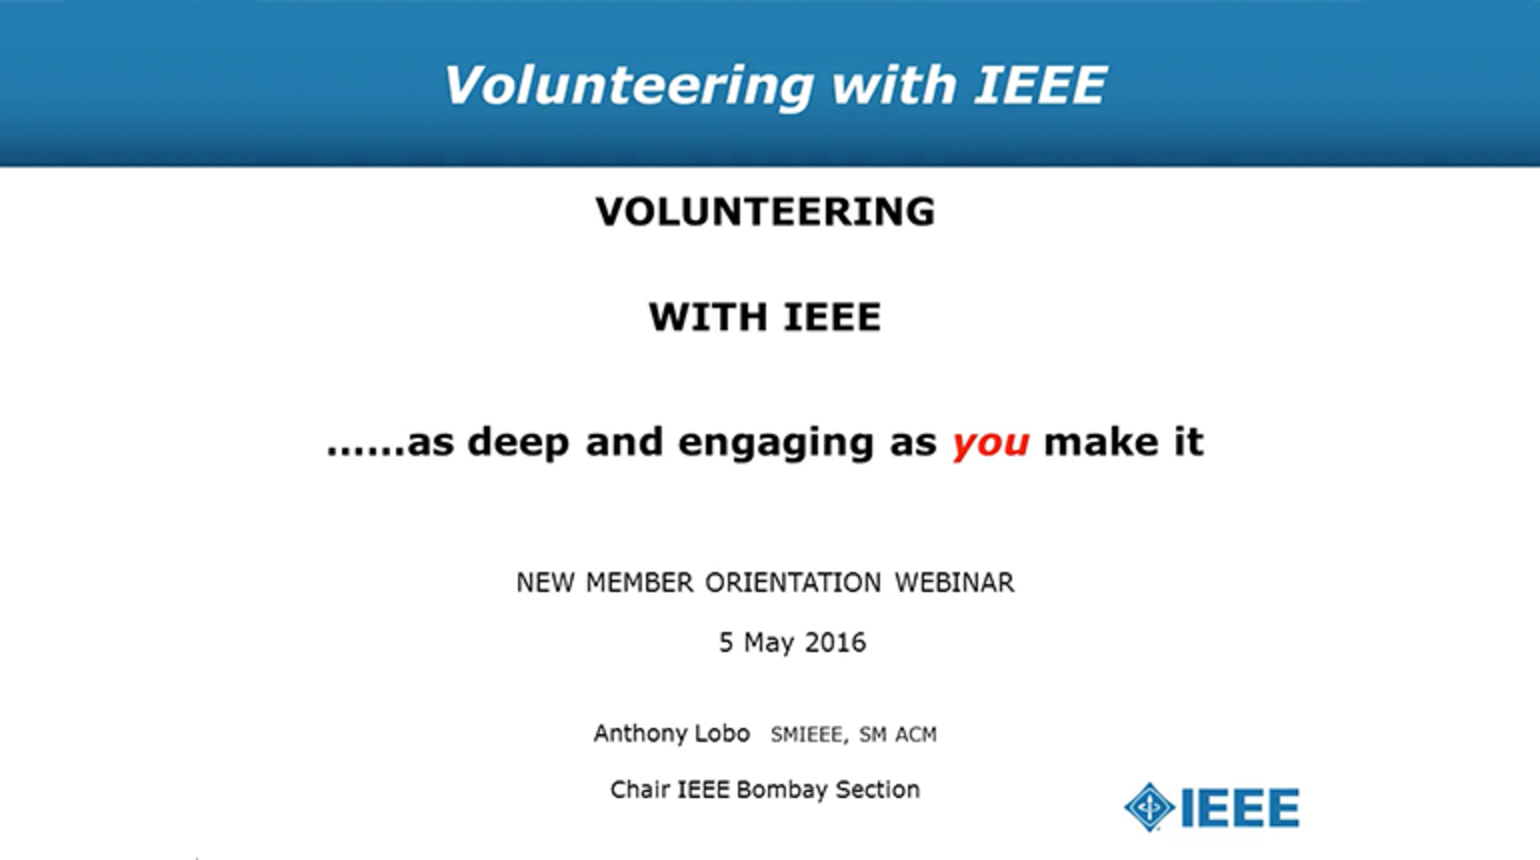 Volunteering with IEEE: As Deep and Engaging as You Make It - Anthony Lobo (Webinar)